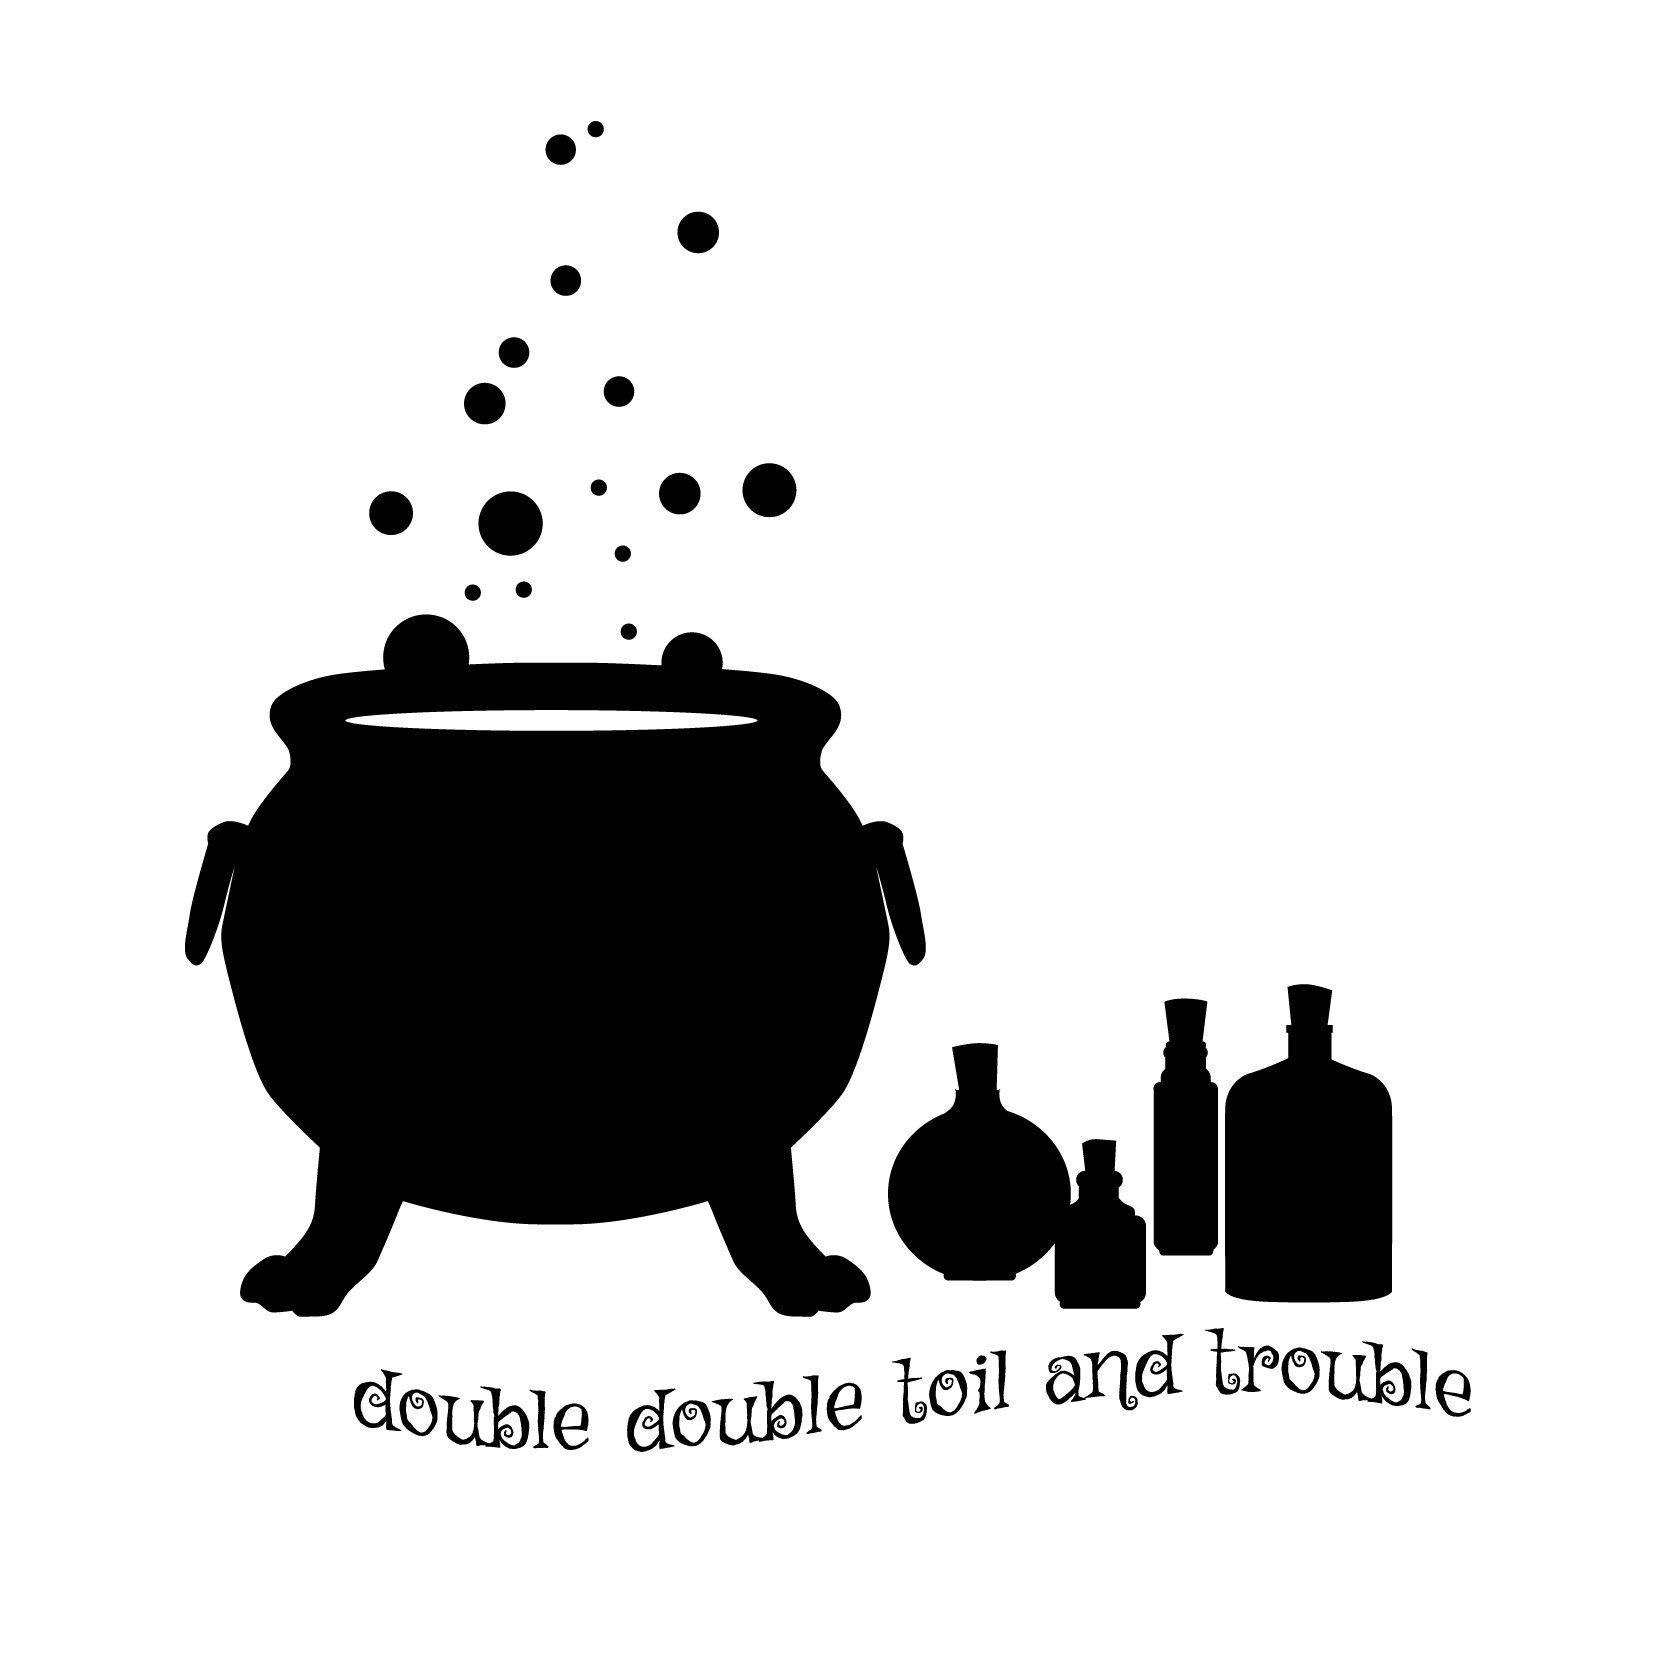 Halloween Harry Potter Black Wizard Cauldron and Potions Bottles - Black - Vinyl Wall Art Decal for Homes, Offices, Kids Rooms, Nurseries, Schools, High Schools, Colleges, Universities, Events